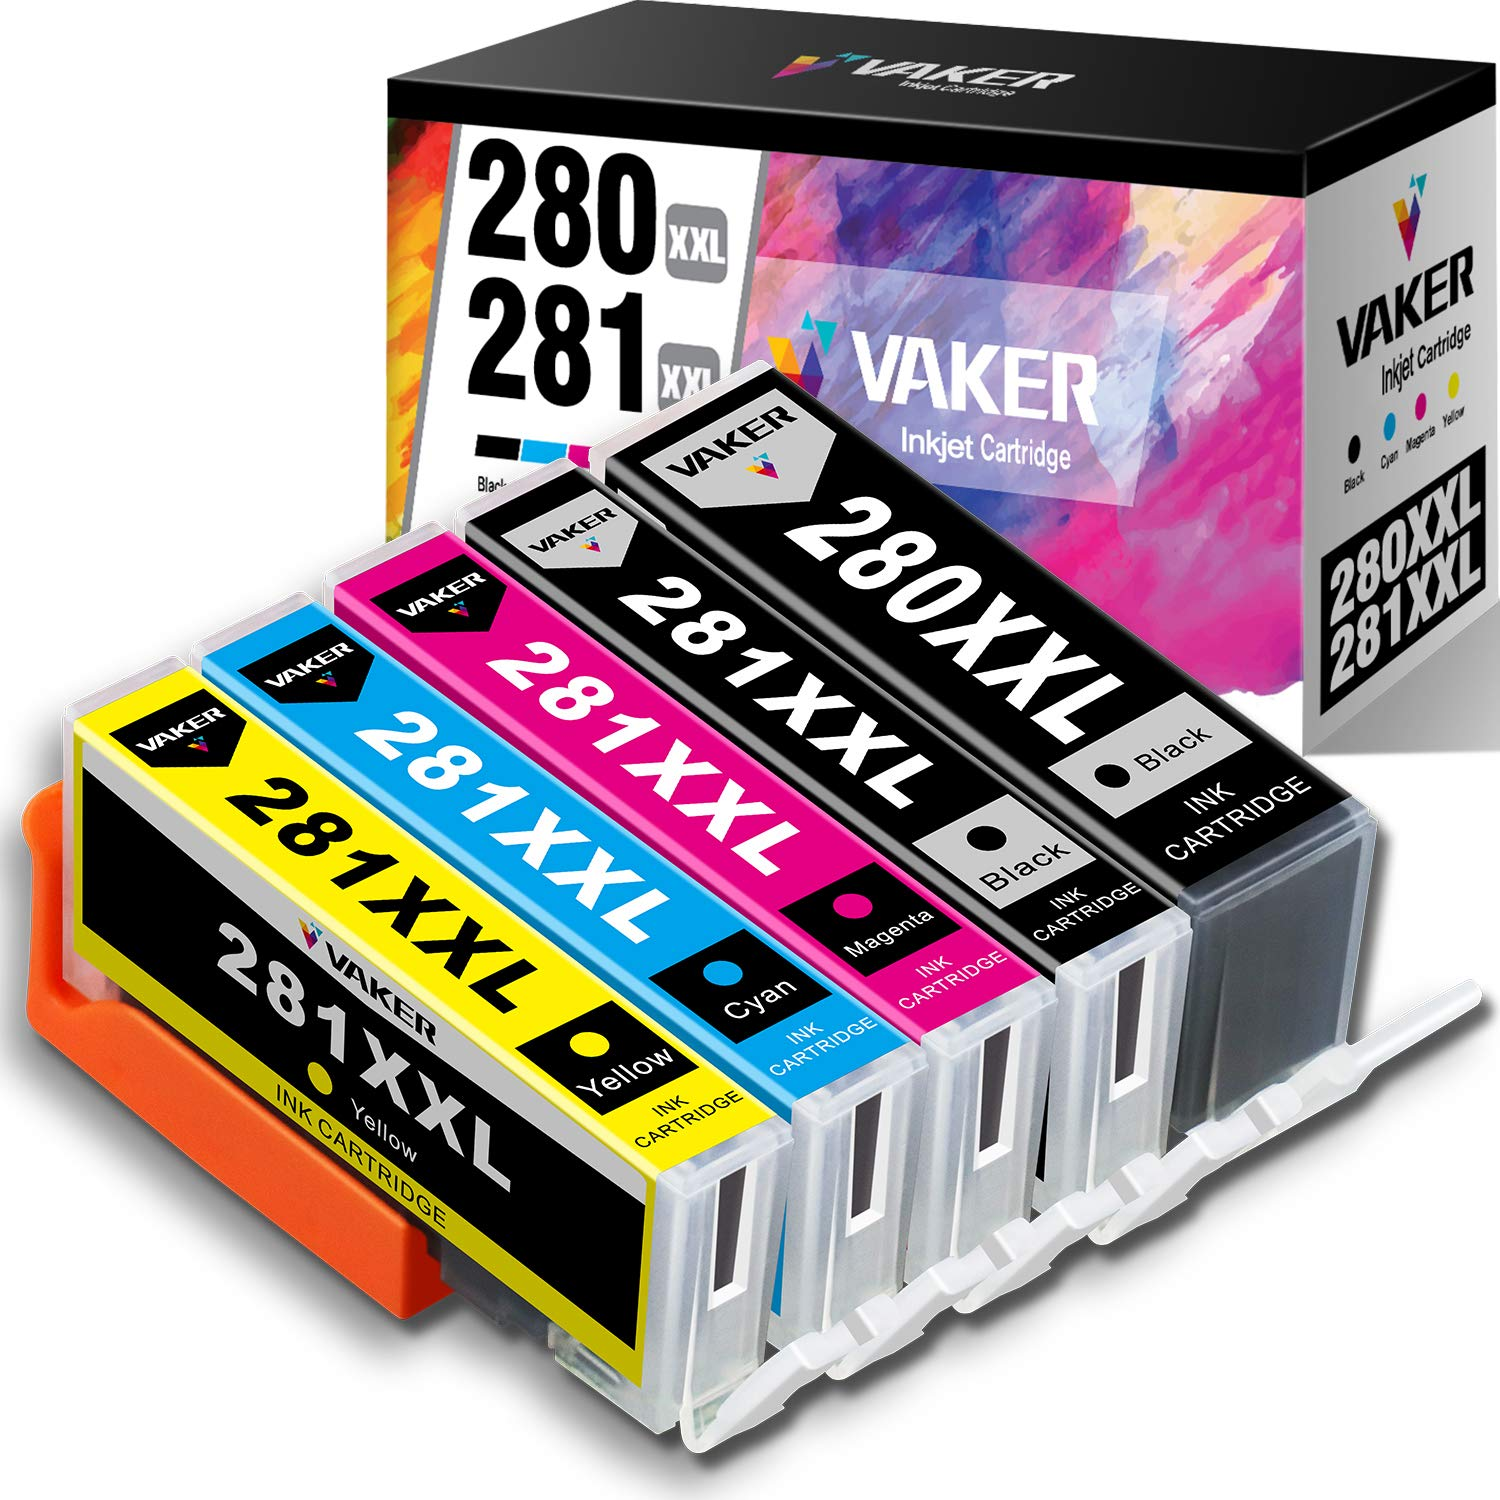 VAKER Compatible Ink Cartridge Replacement for Canon PGI-280XXL CLI-281XXL PGI 280 XXL CLI 281 XXL for Canon PIXMA TS9120 TR8520 TS6120 TS8220 TS6220 TS8120 TS9521C TR8500 TS6100 (5 Pack)